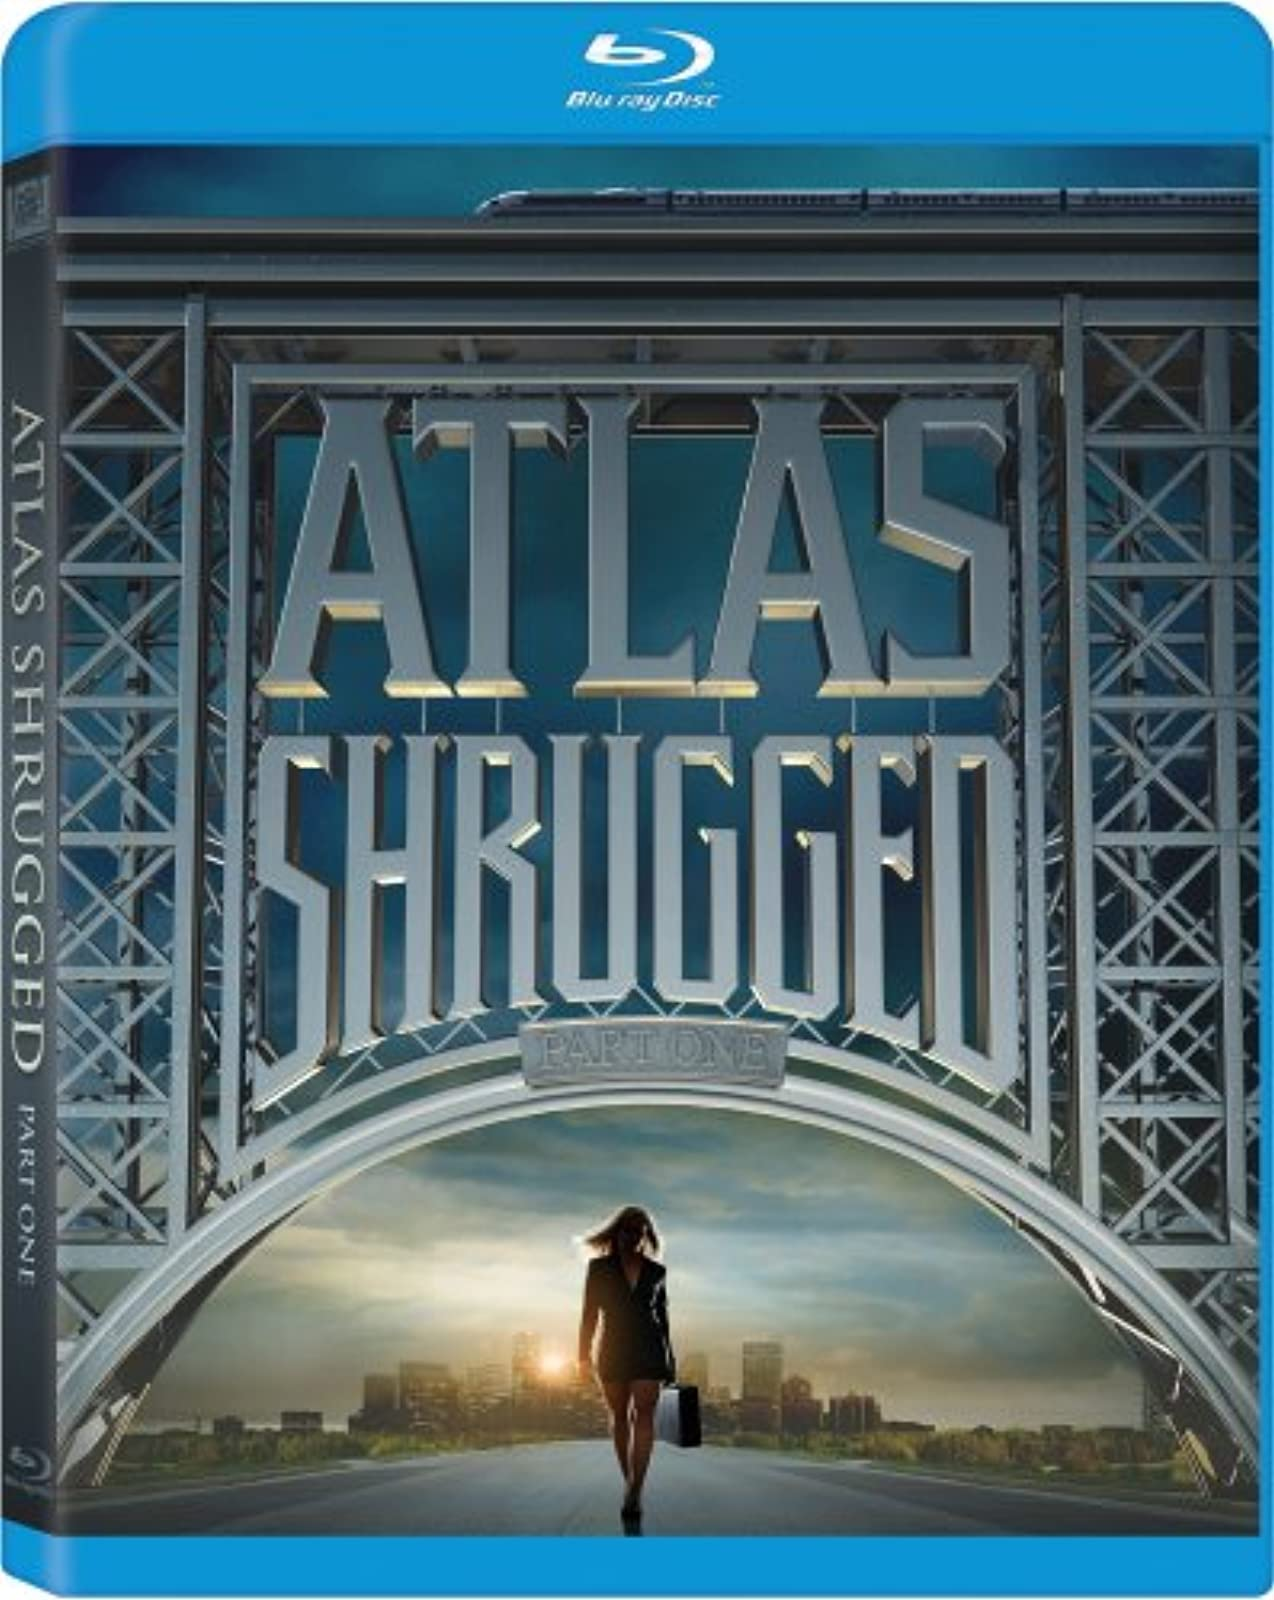 Atlas Shrugged: Part One Blu-Ray On Blu-Ray With Taylor Schilling Drama